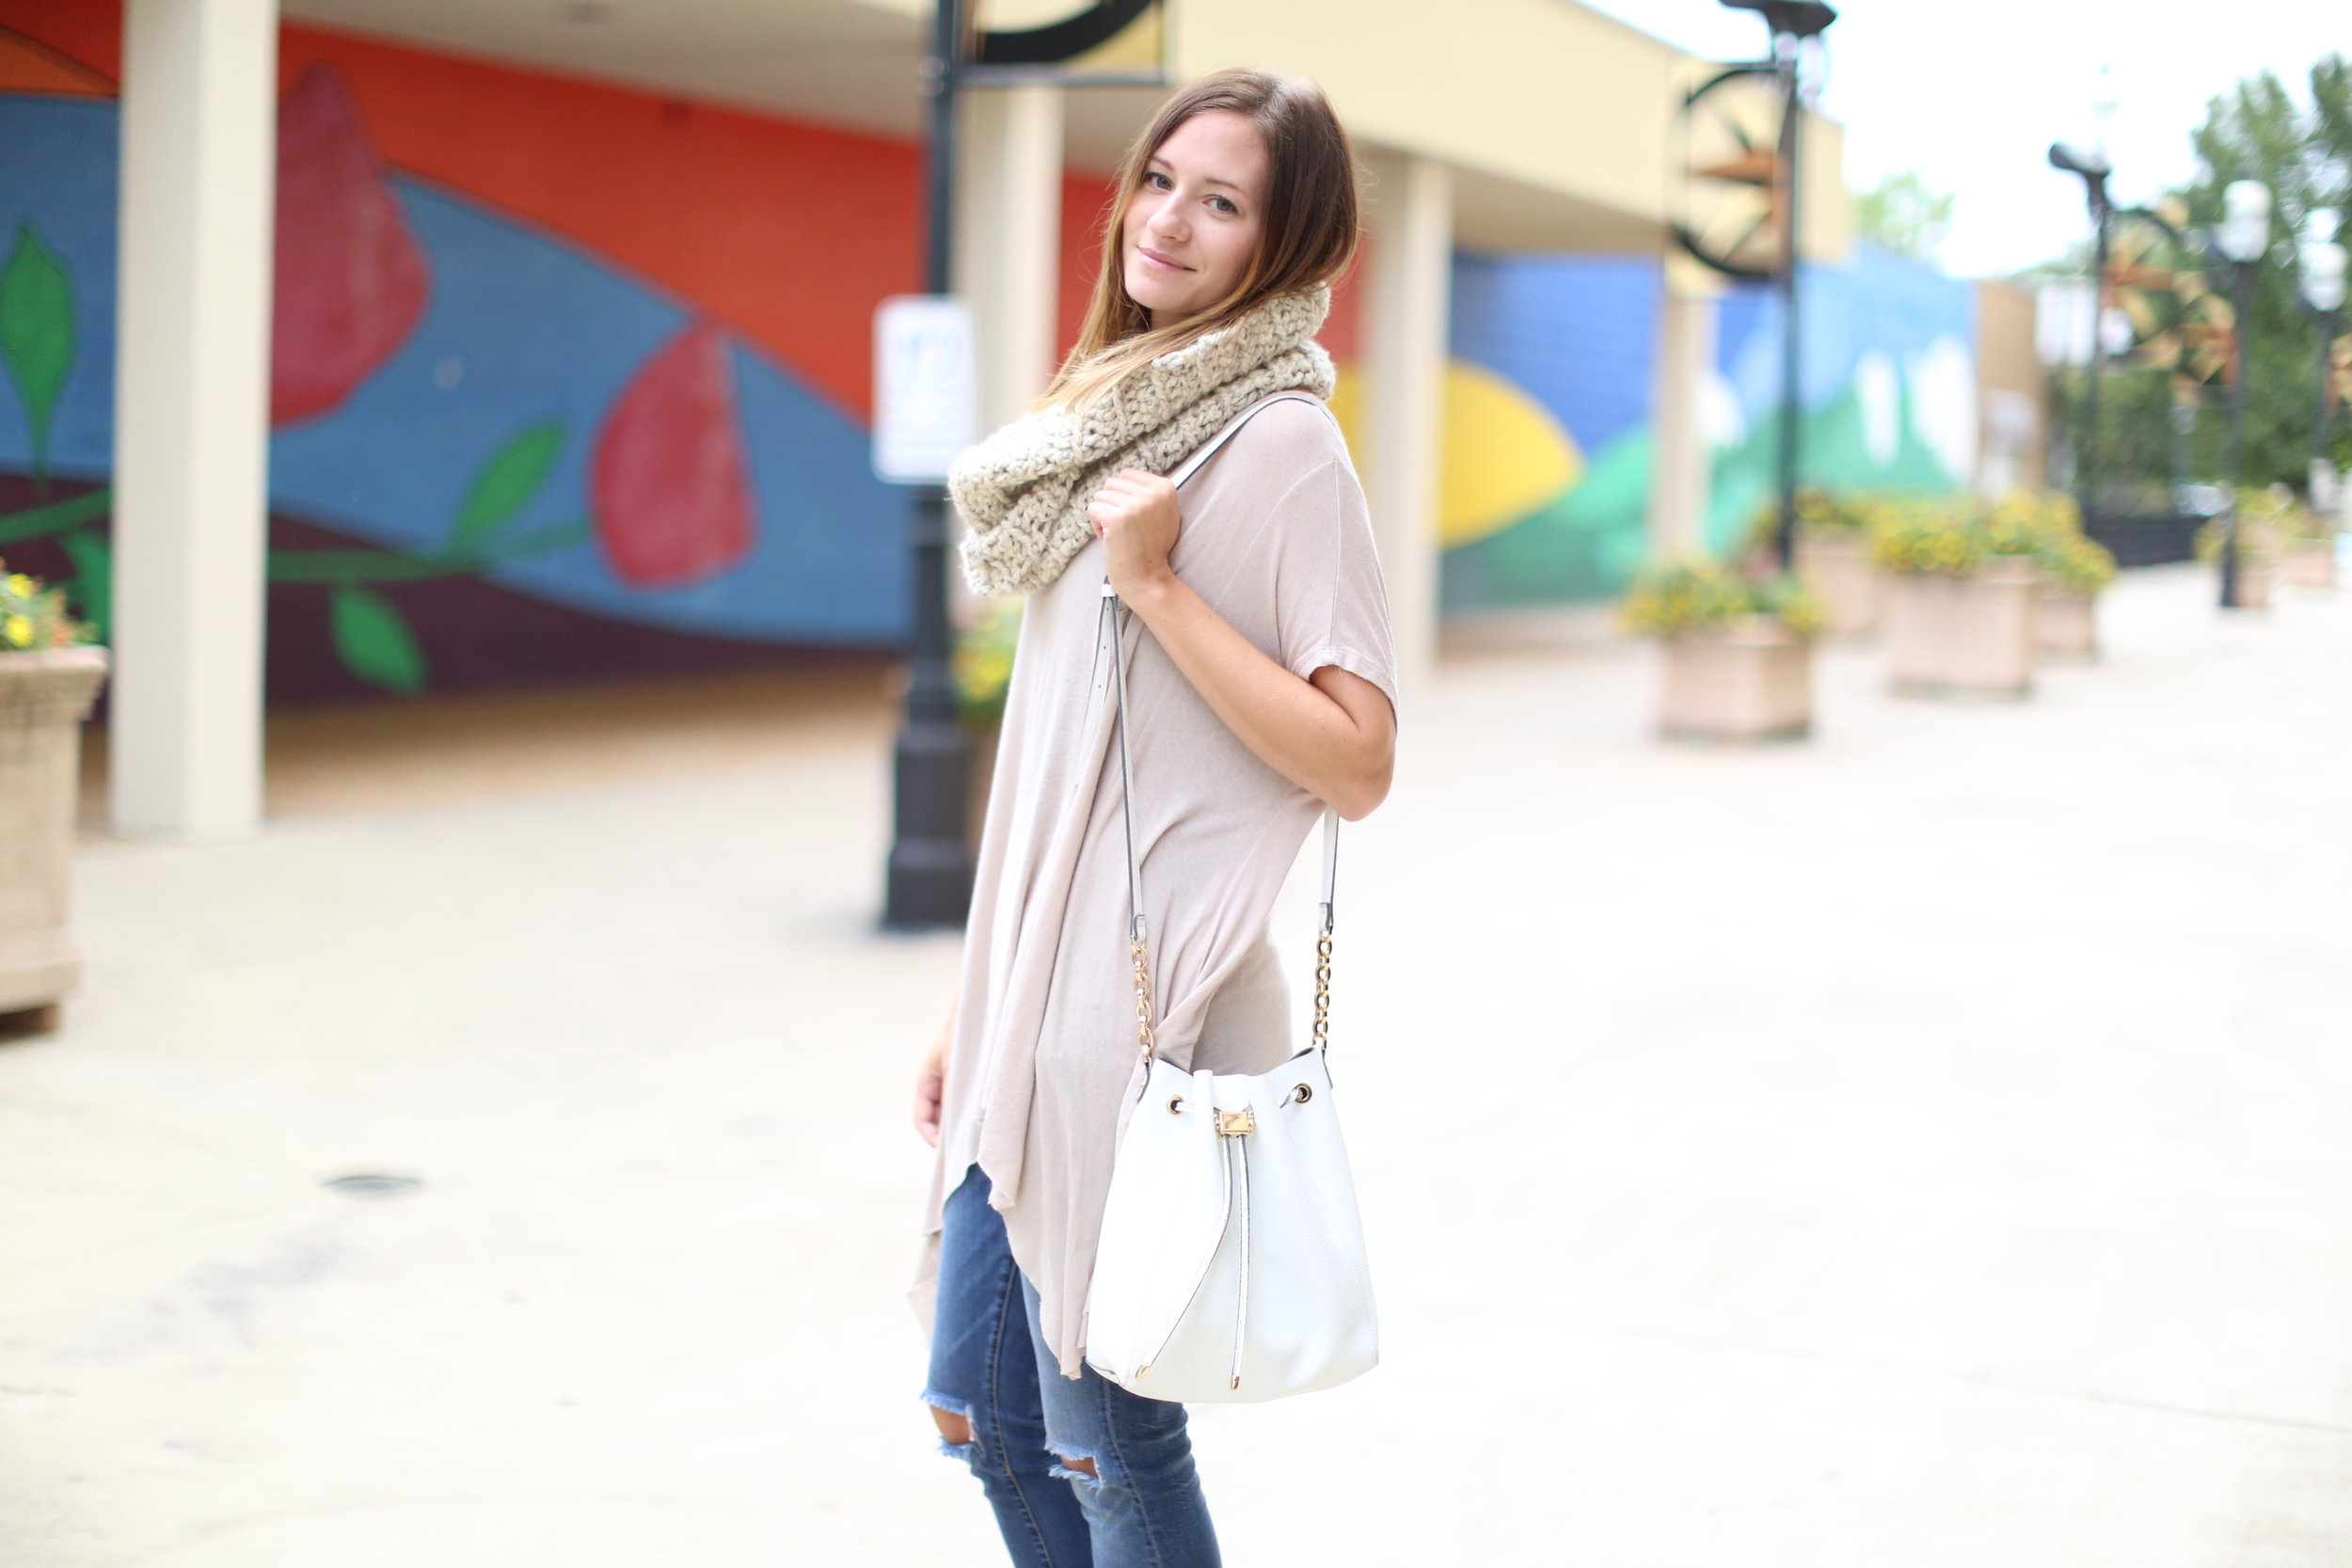 Infintiy Scarf + Boots | Fall Outfit | Katelyn Now